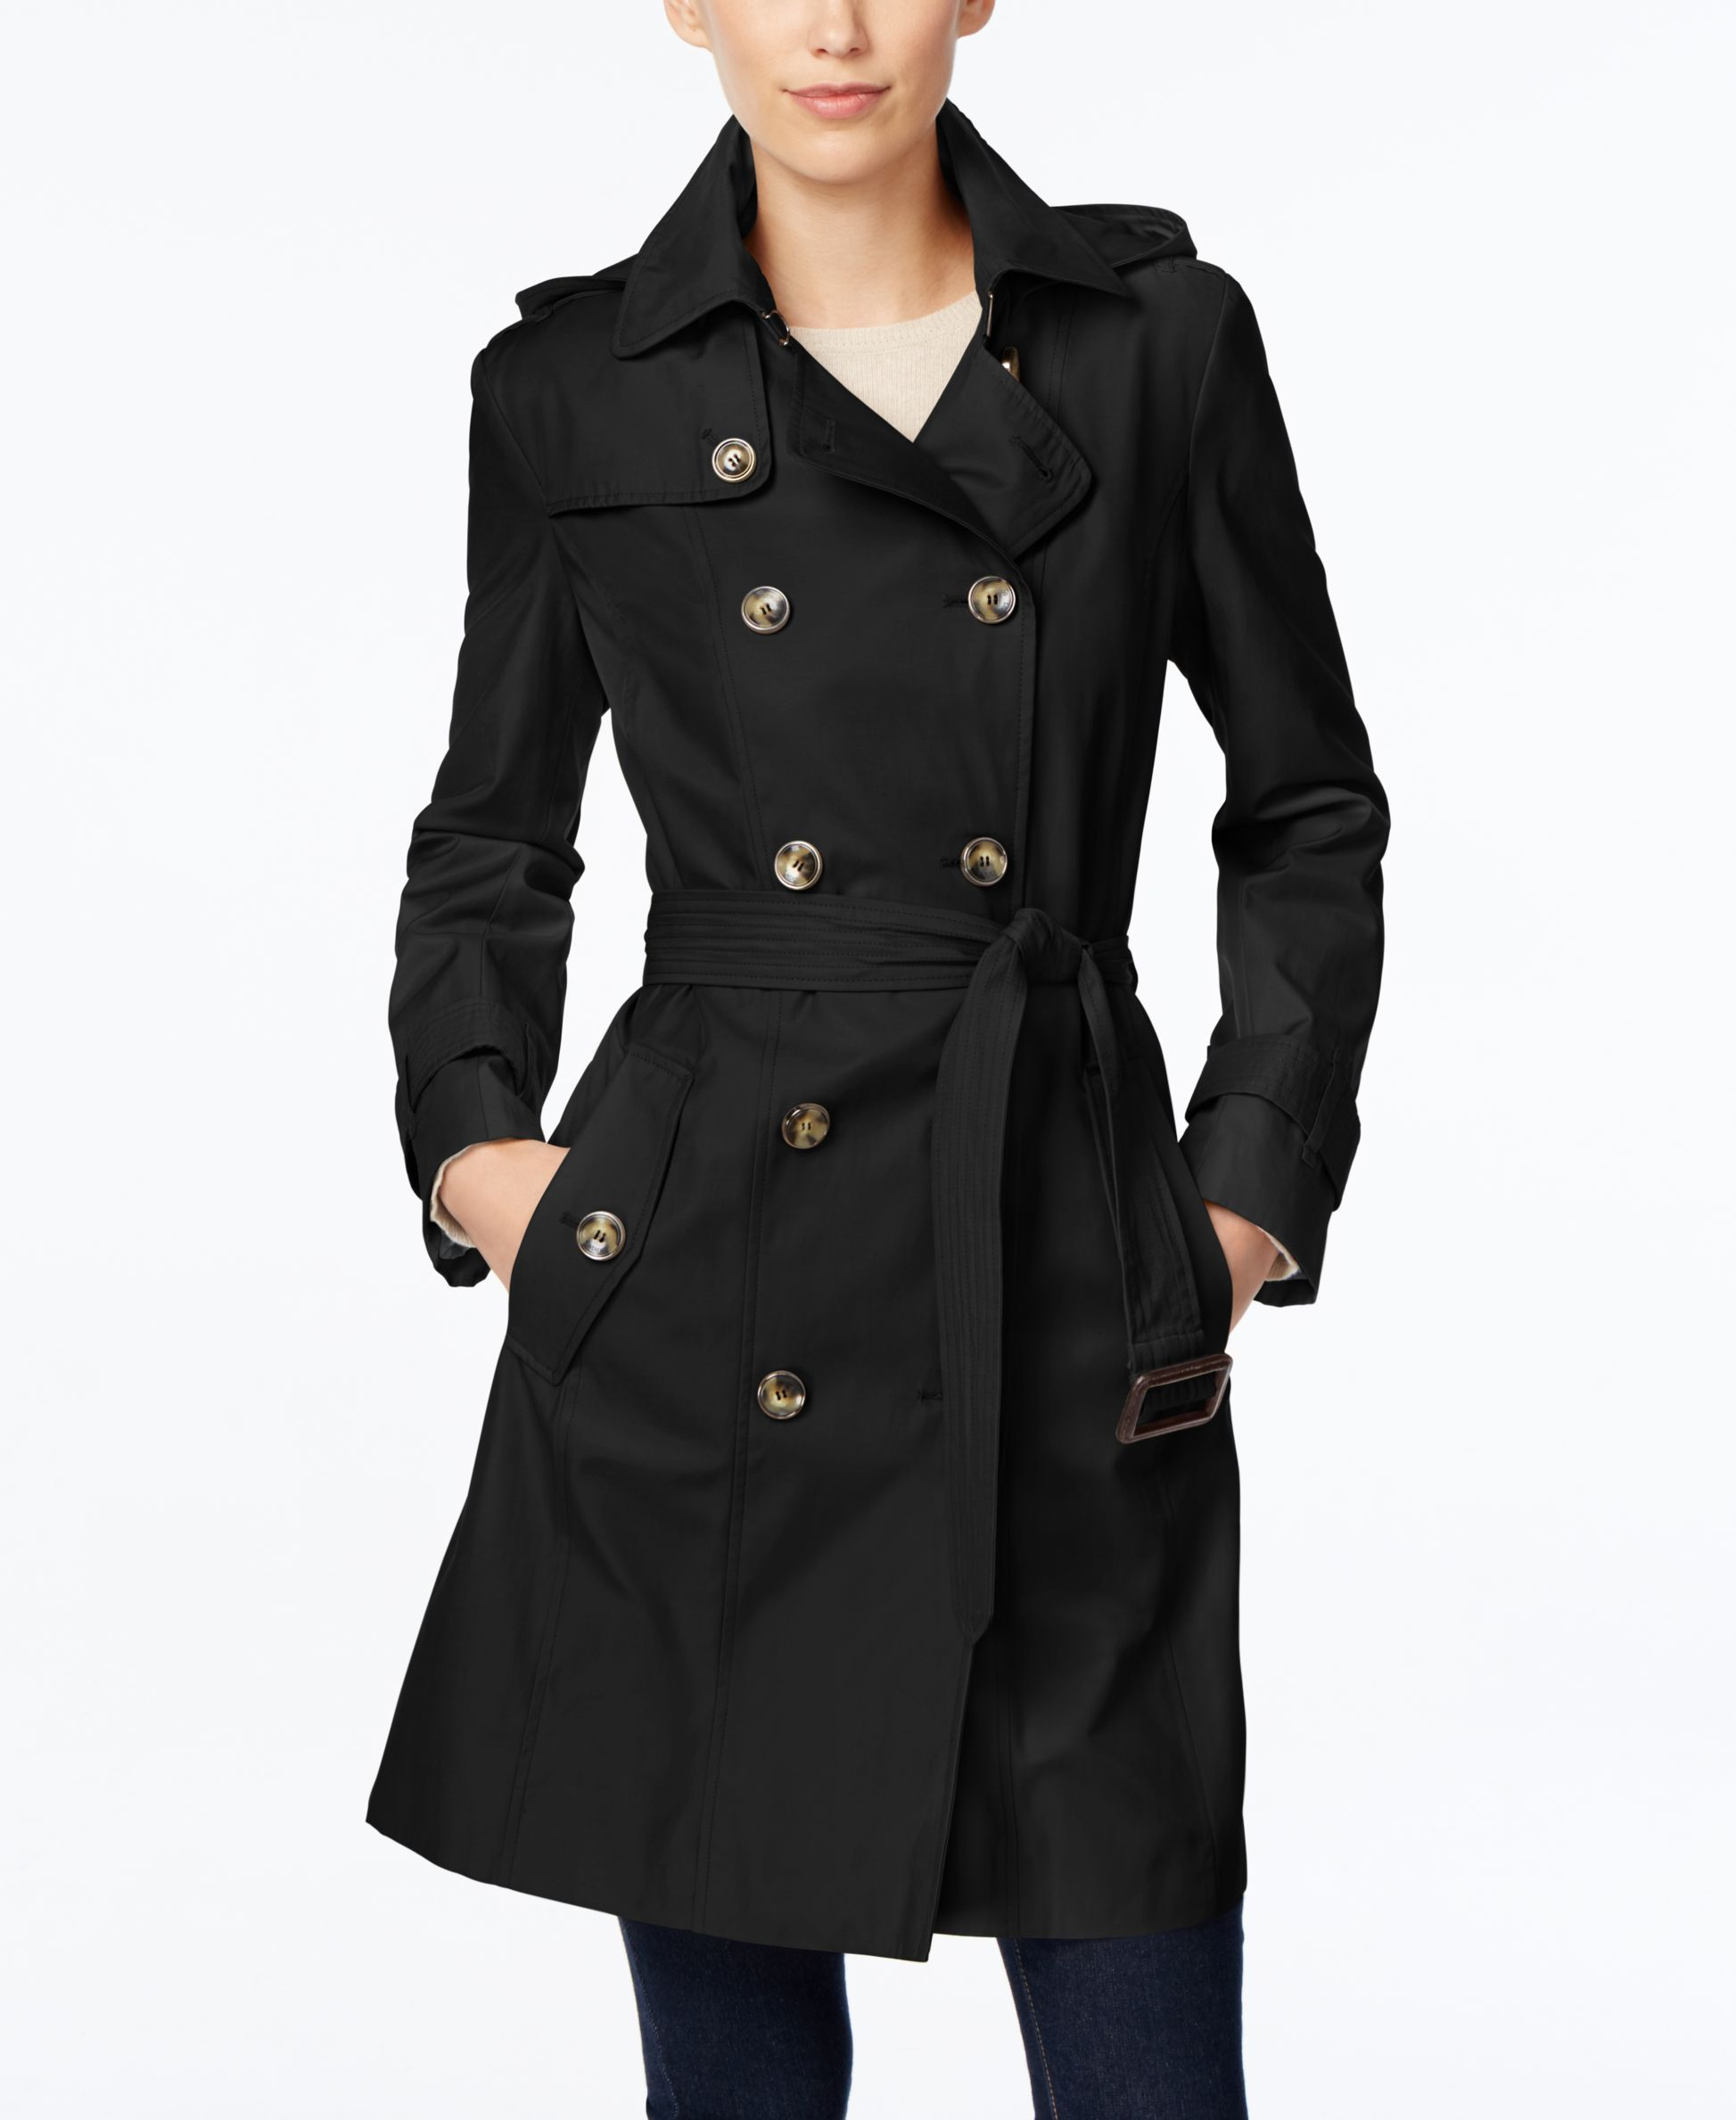 London Fog Hooded All Weather Double Breasted Trench Coat Coats Women Macy S Trench Coats Women Double Breasted Trench Coat Trench Coat [ 2378 x 1947 Pixel ]